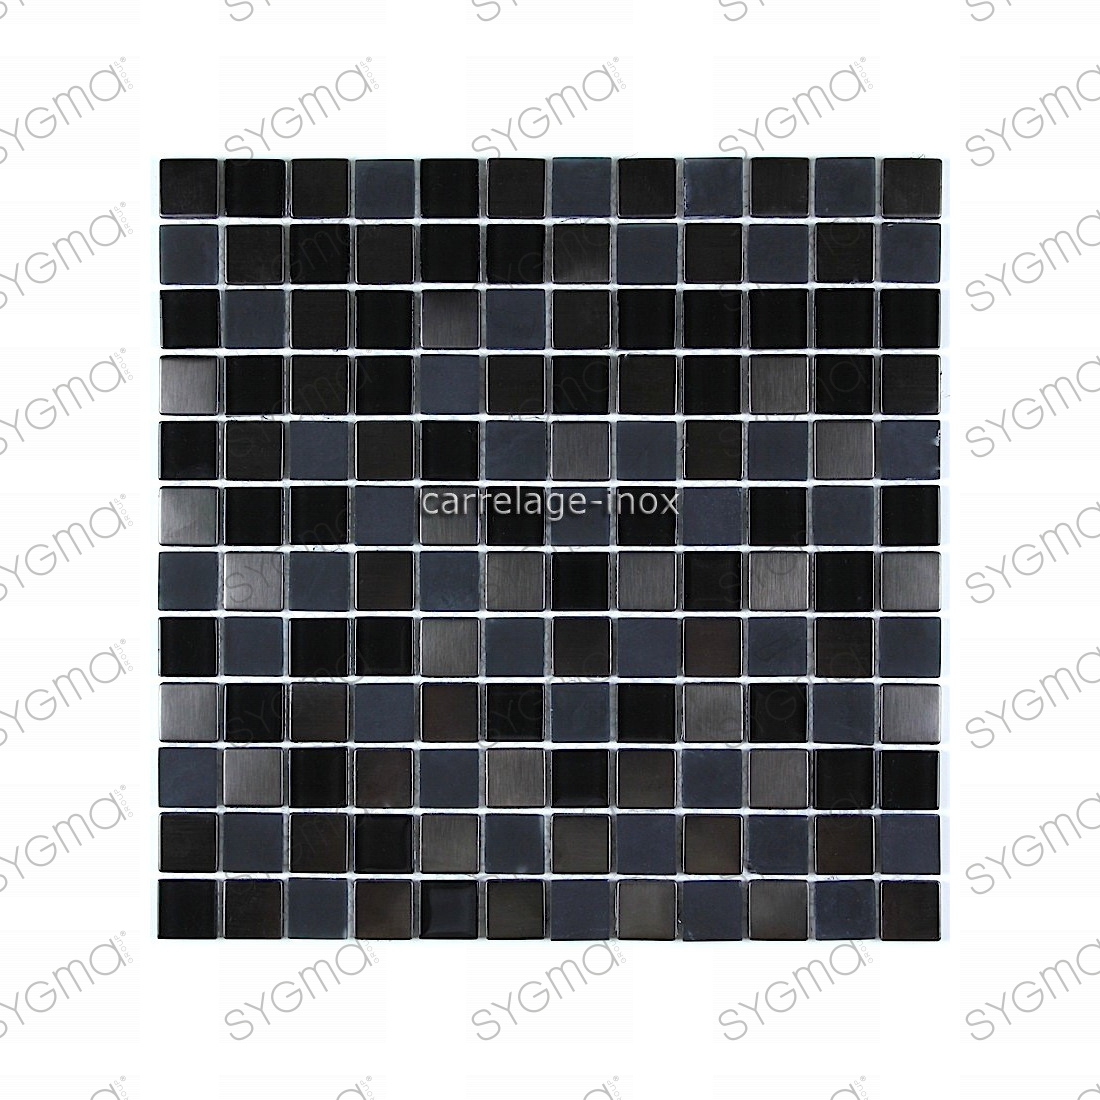 Carrelage mosaique noir maison design for Carrelage mosaique